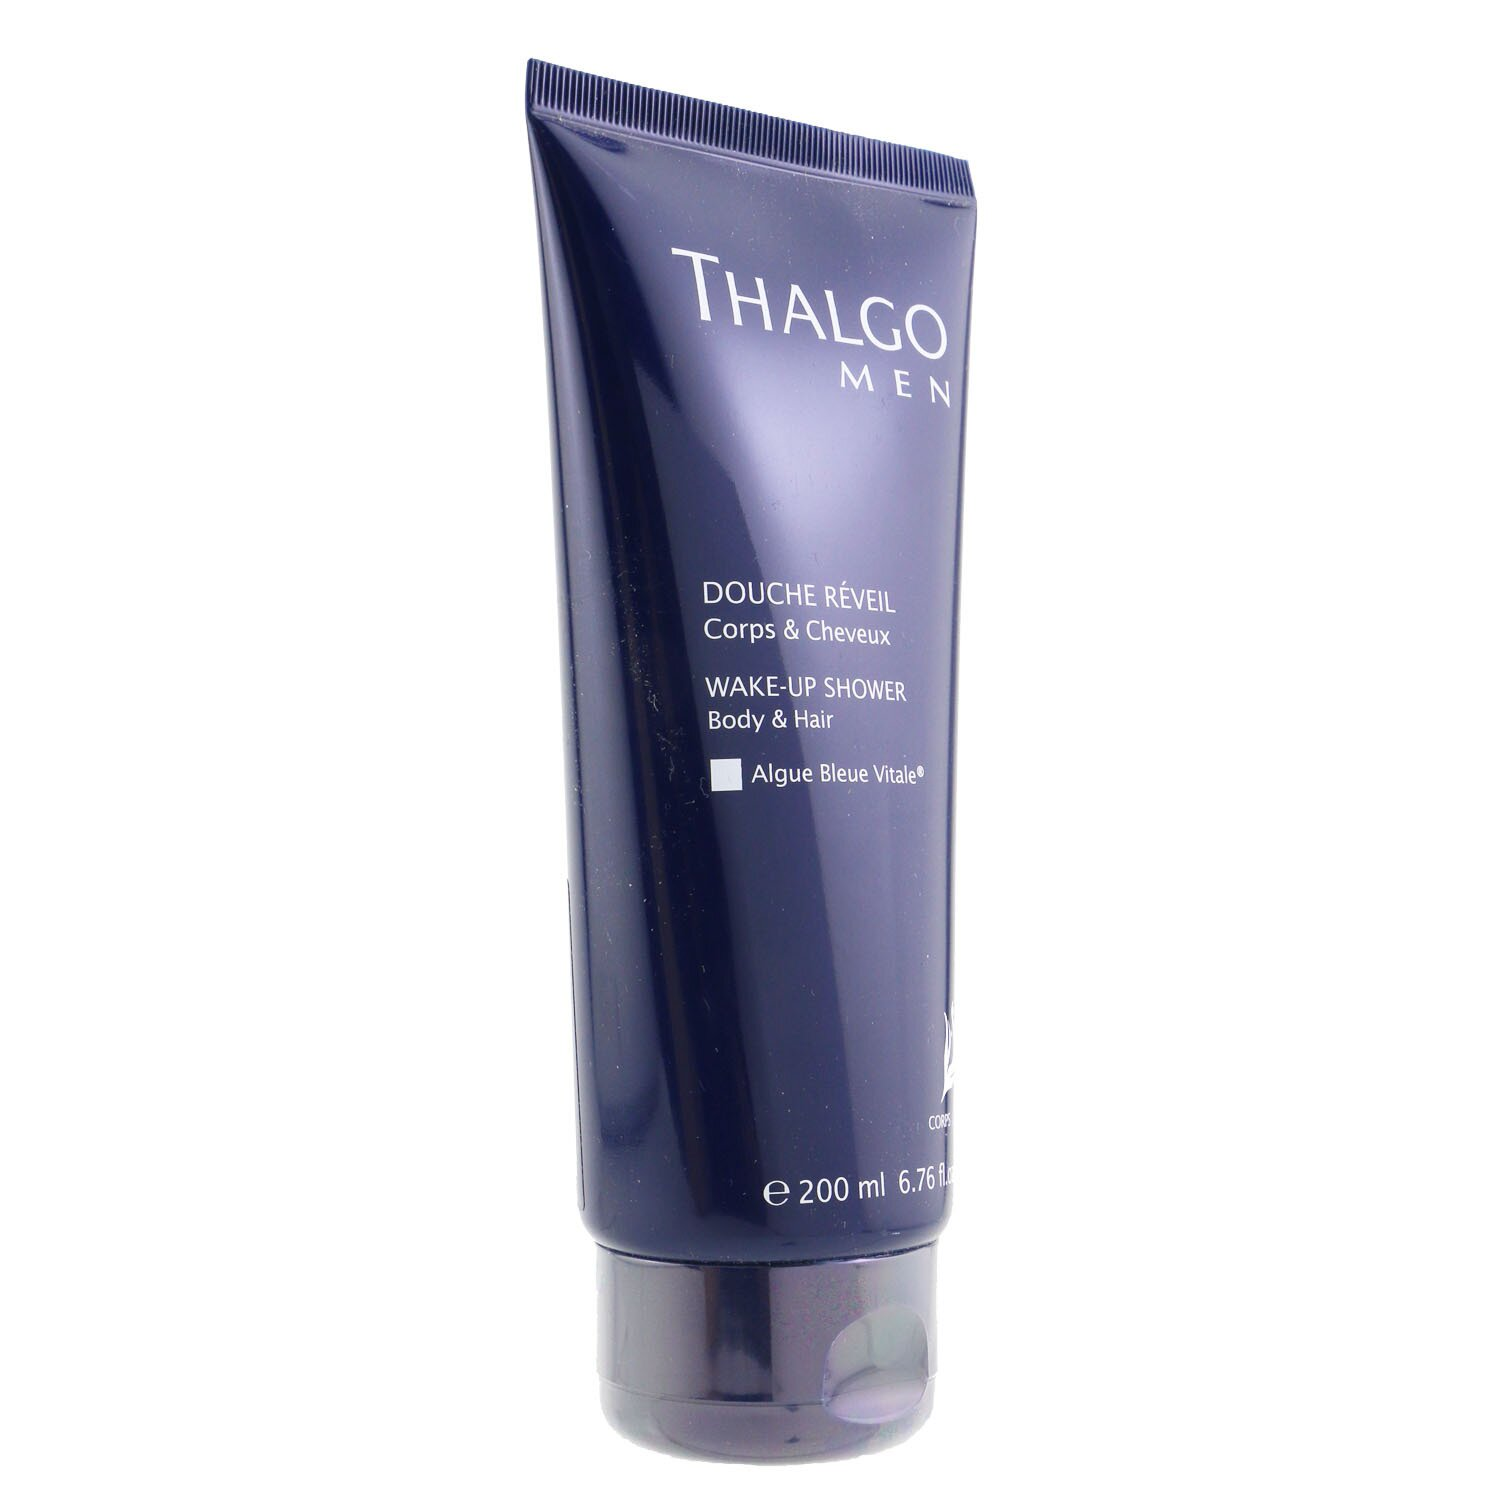 岱蔻兒 Thalgo - 男士洗髮沐浴凝膠 Thalgomen Wake-Up Shower Gel - Body & Hair